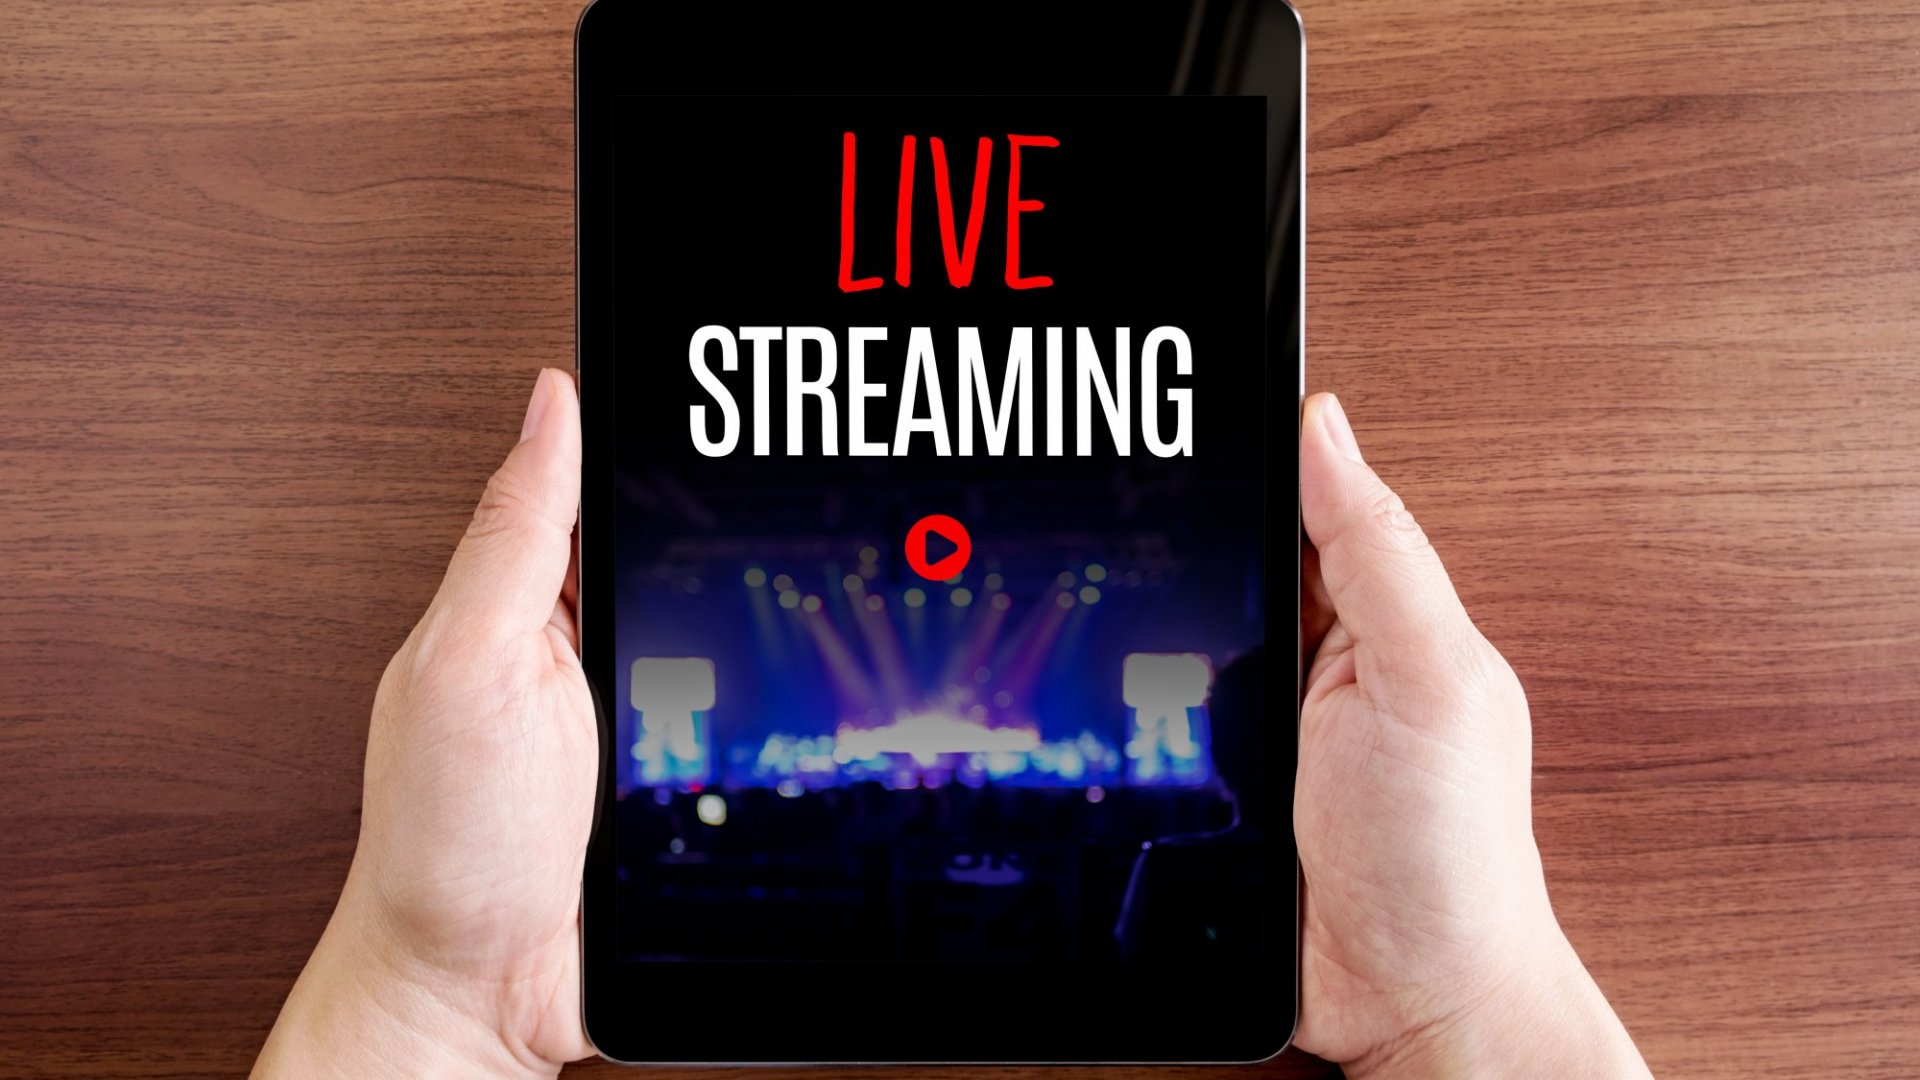 8 Smart Ways Your Business Should Be Using Live Streaming Right Now